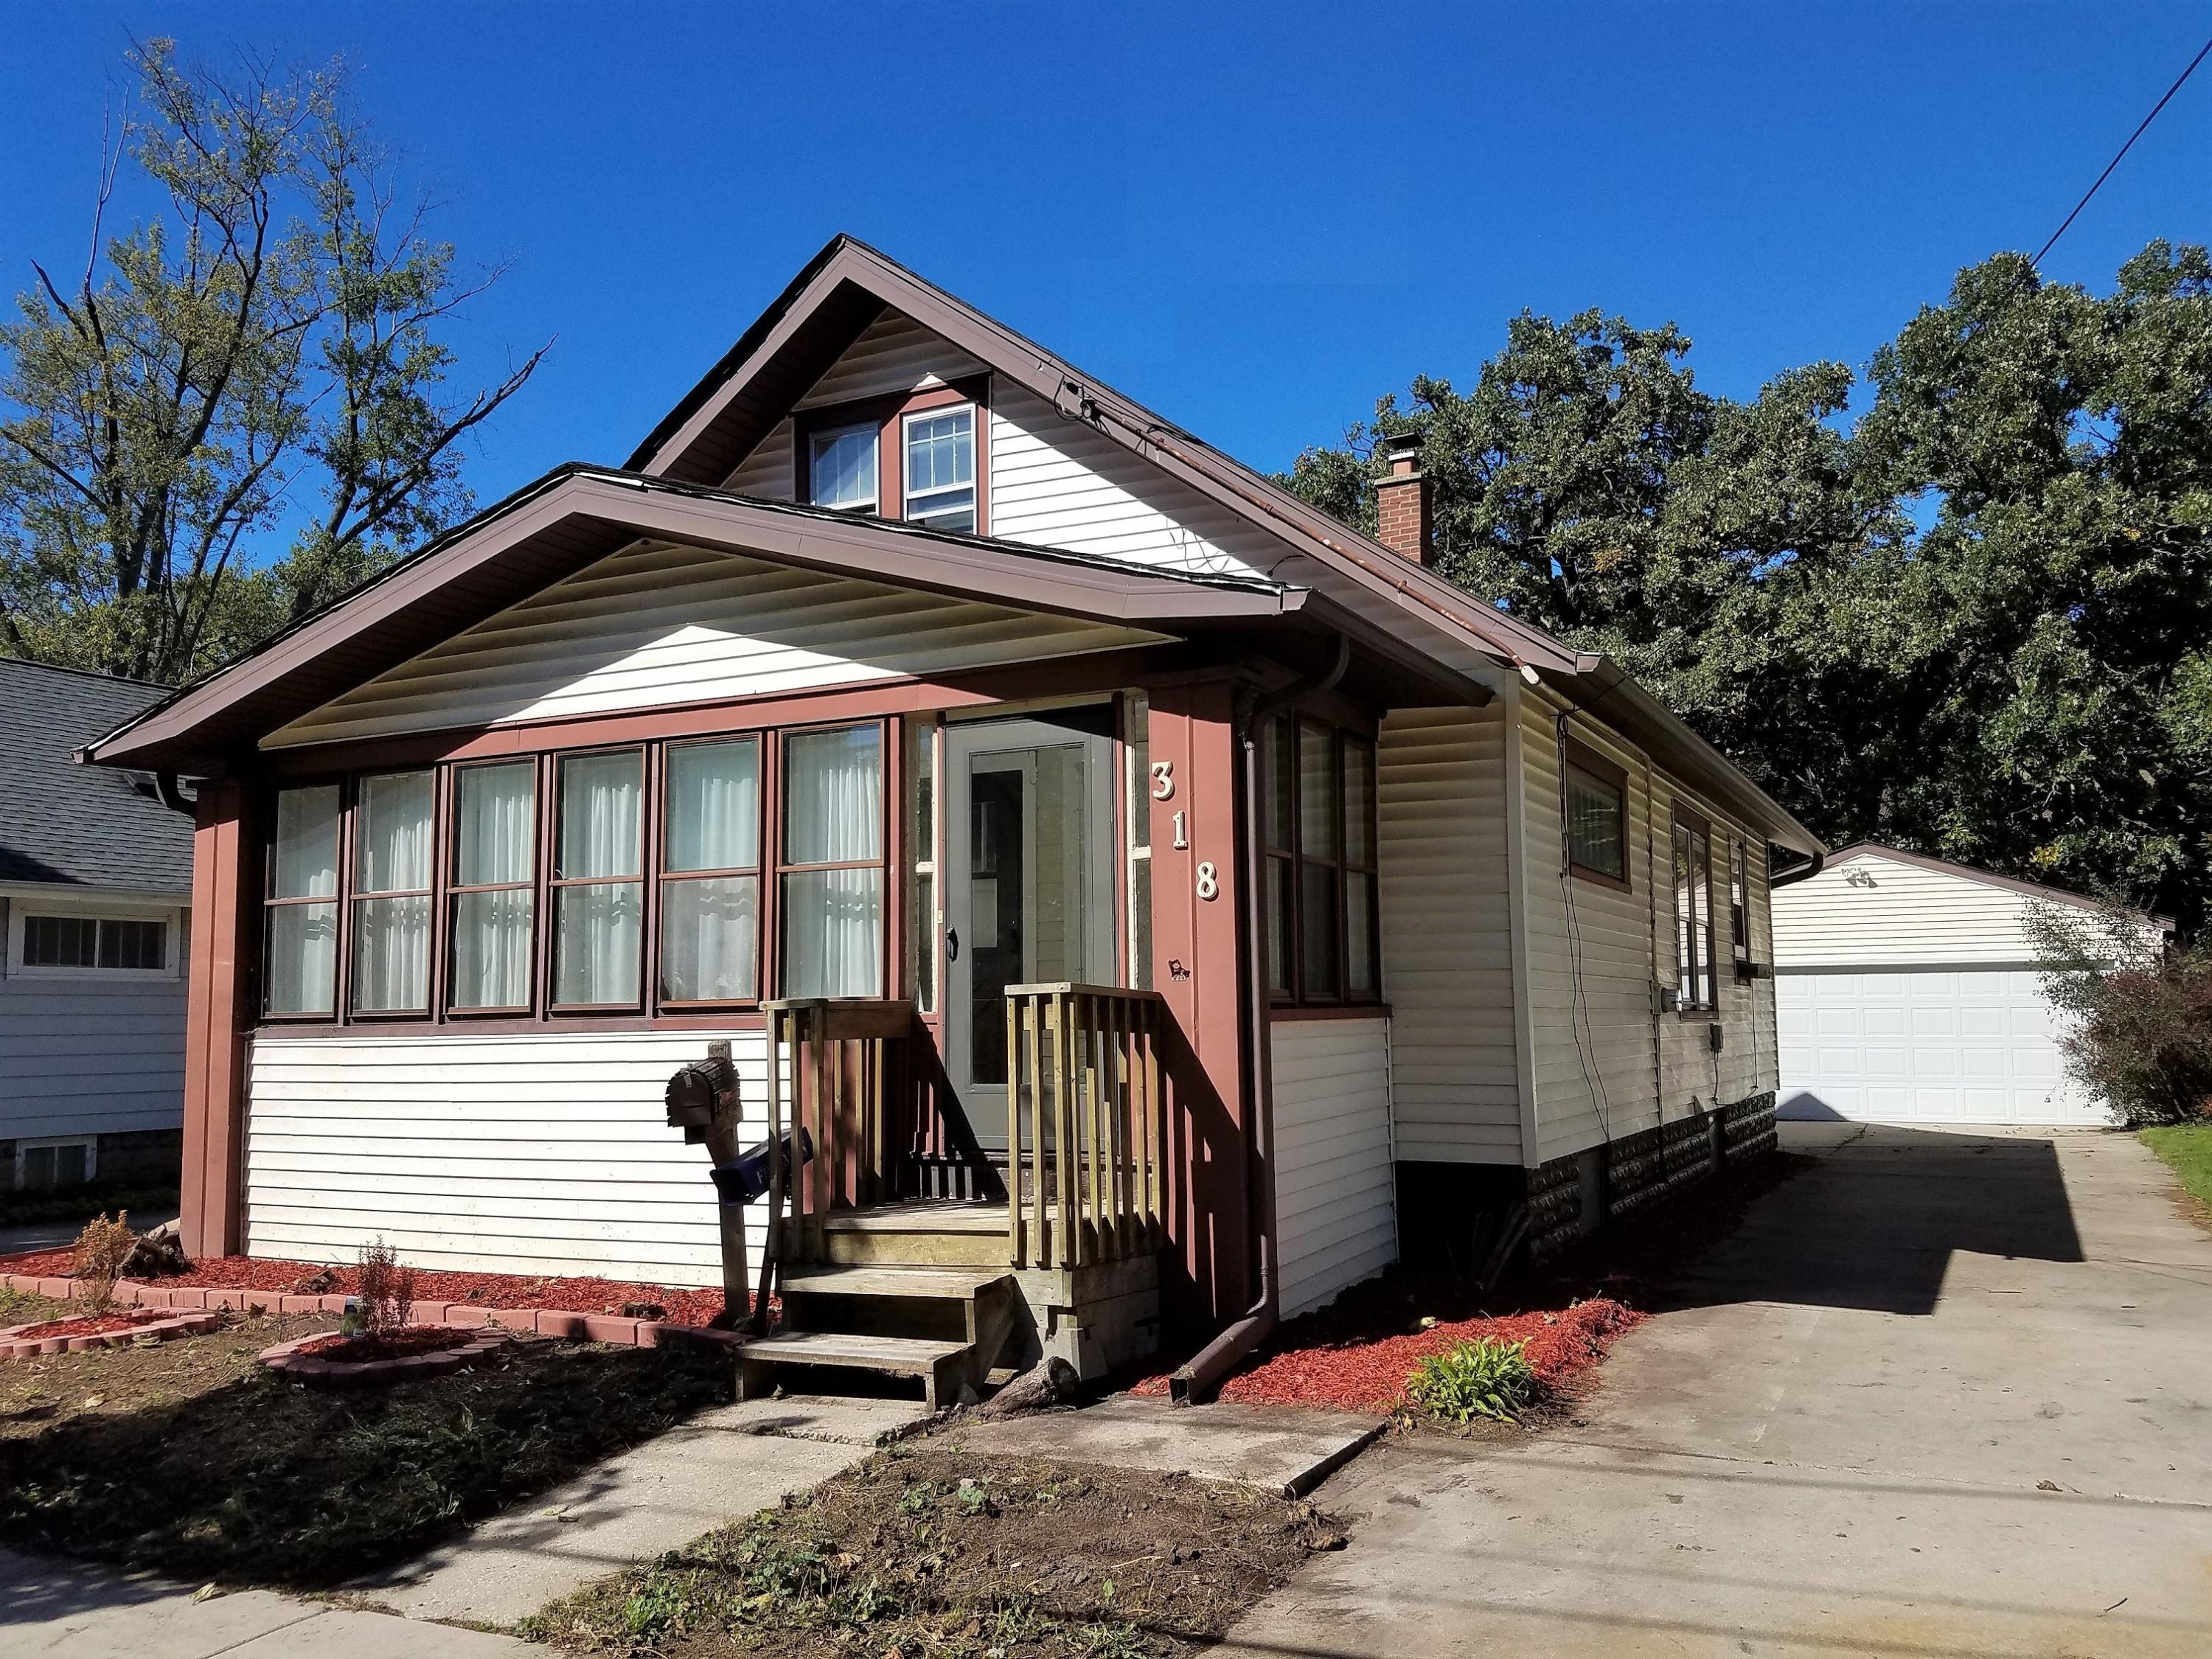 318 Lemira Ave, Waukesha, Wisconsin 53188, 3 Bedrooms Bedrooms, 6 Rooms Rooms,1 BathroomBathrooms,Single-Family,For Sale,Lemira Ave,1609469